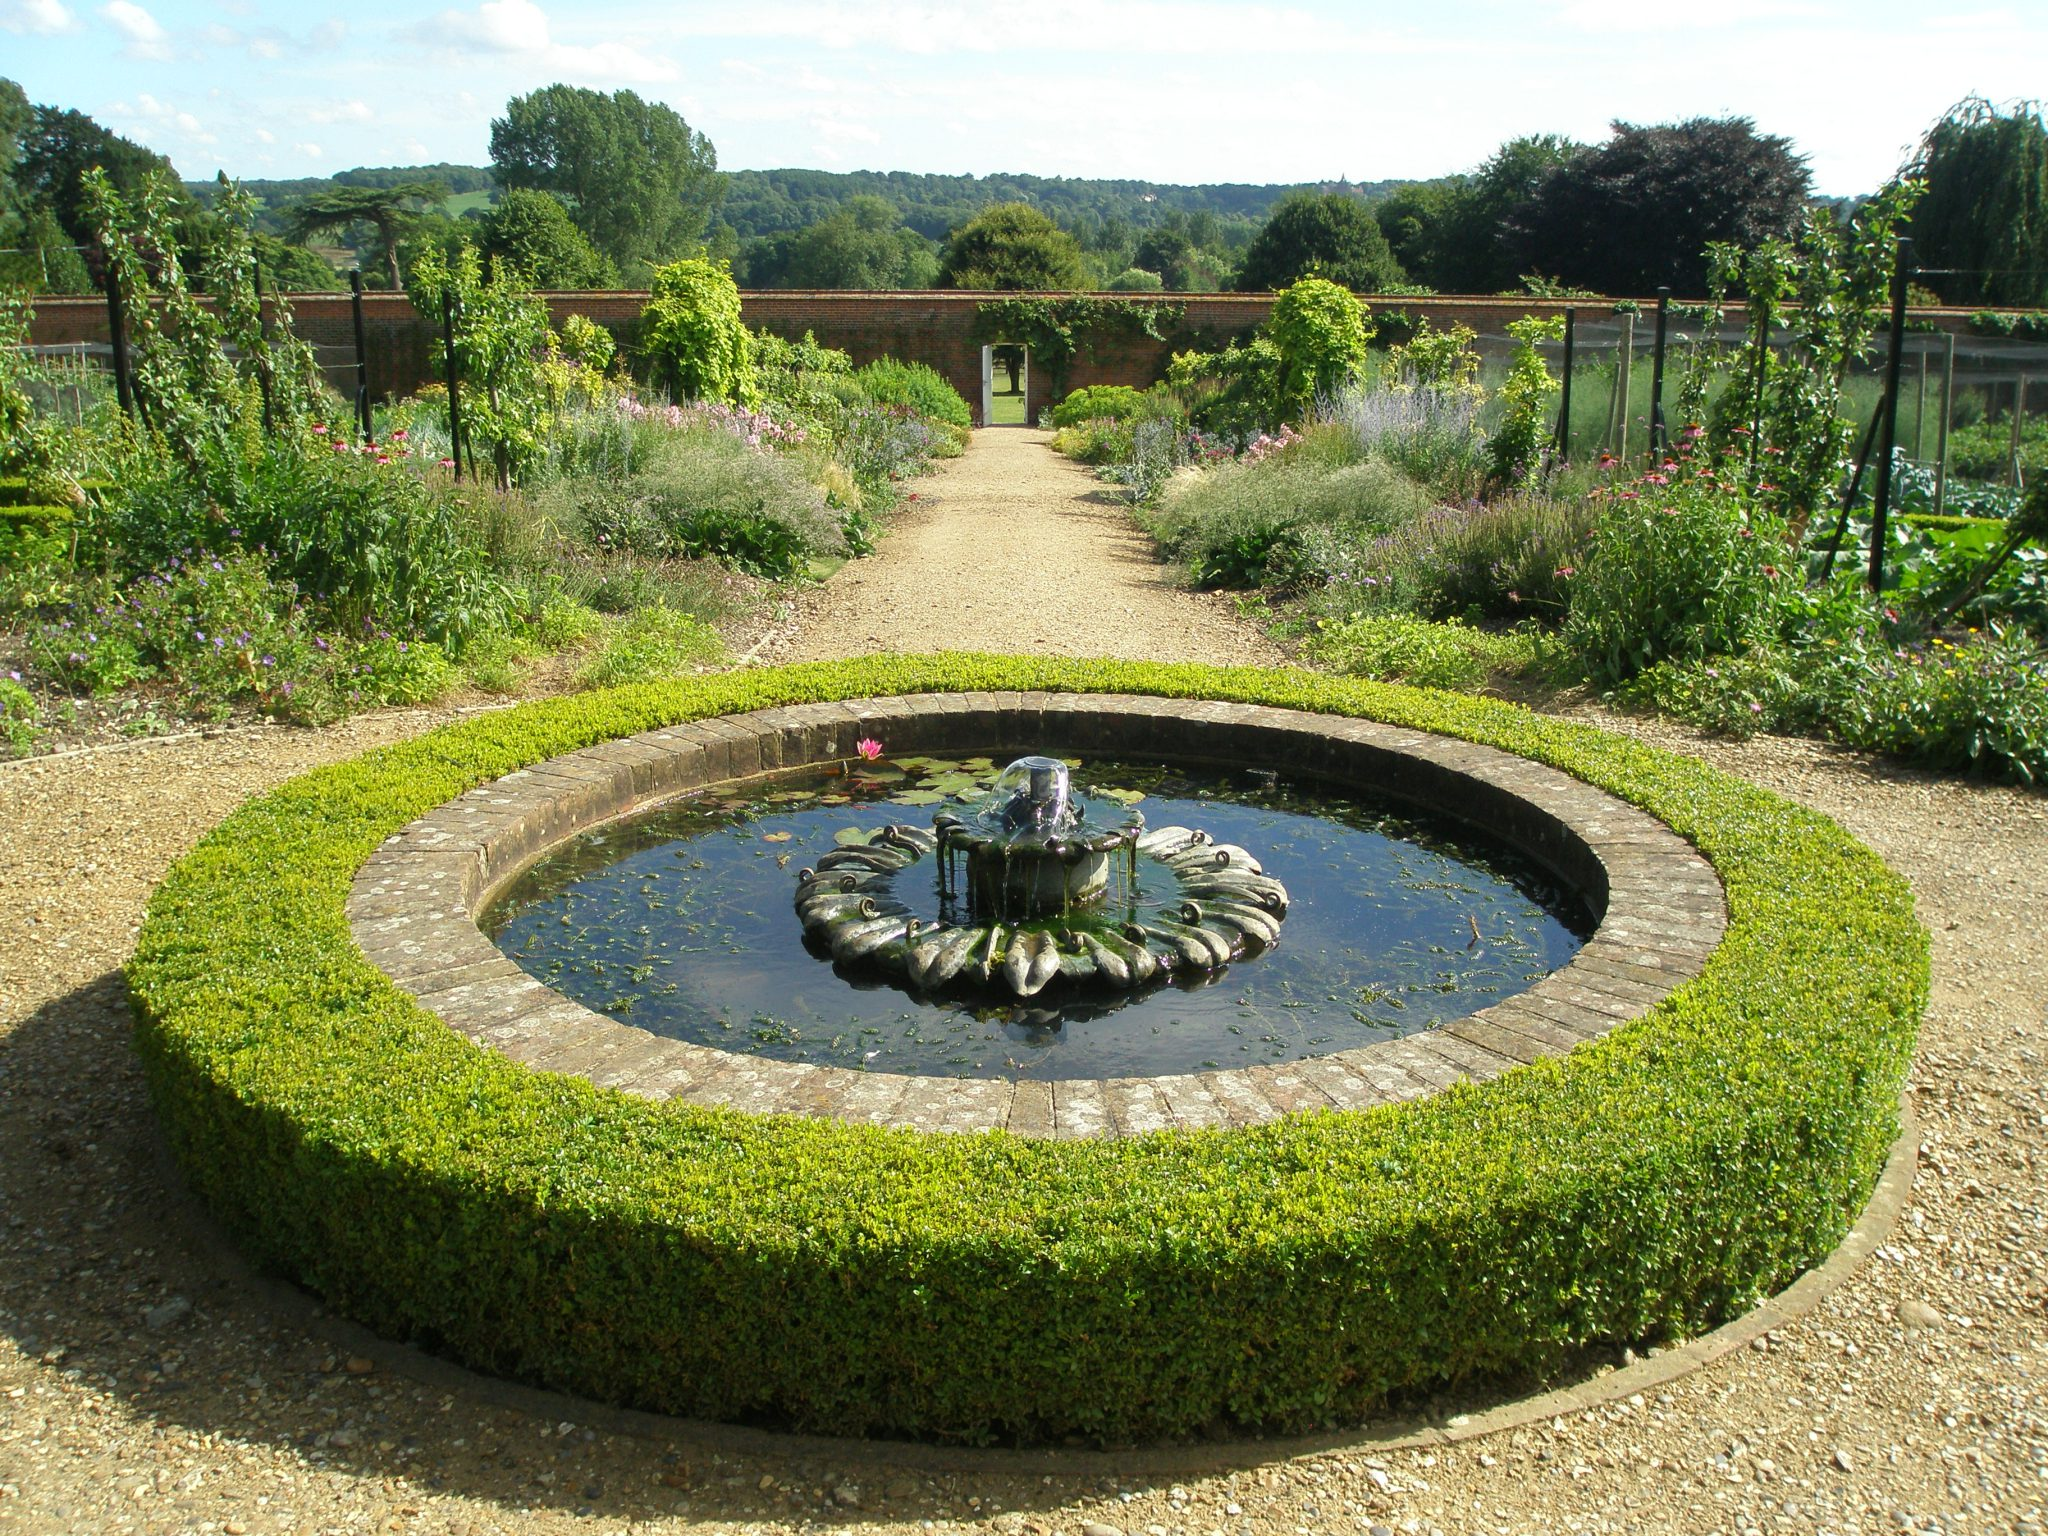 View from the higher reaches of the Walled Garden